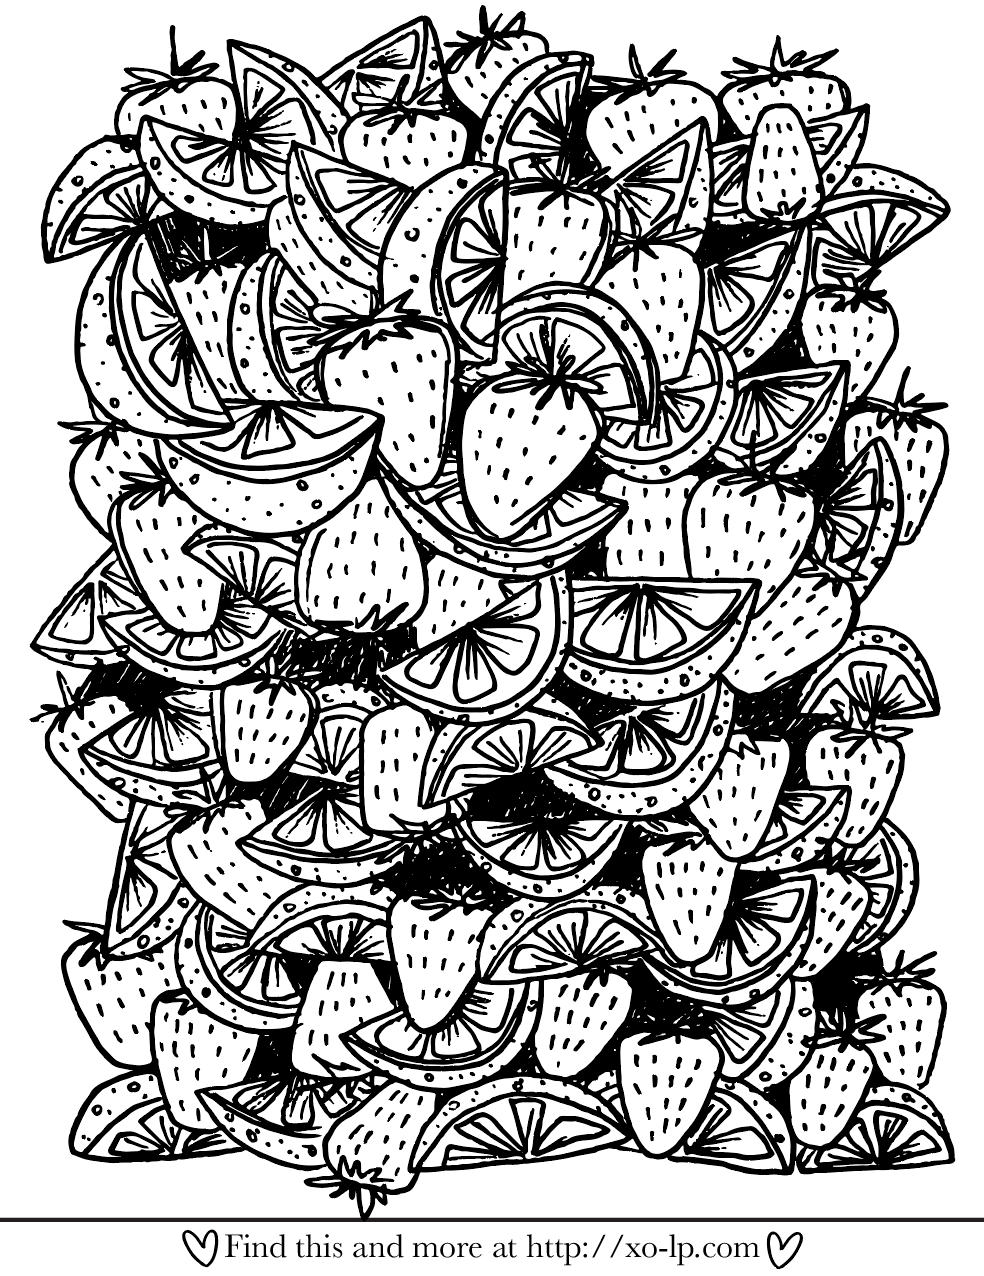 Fancy Fruit Printable Coloring Page | Printable Coloring